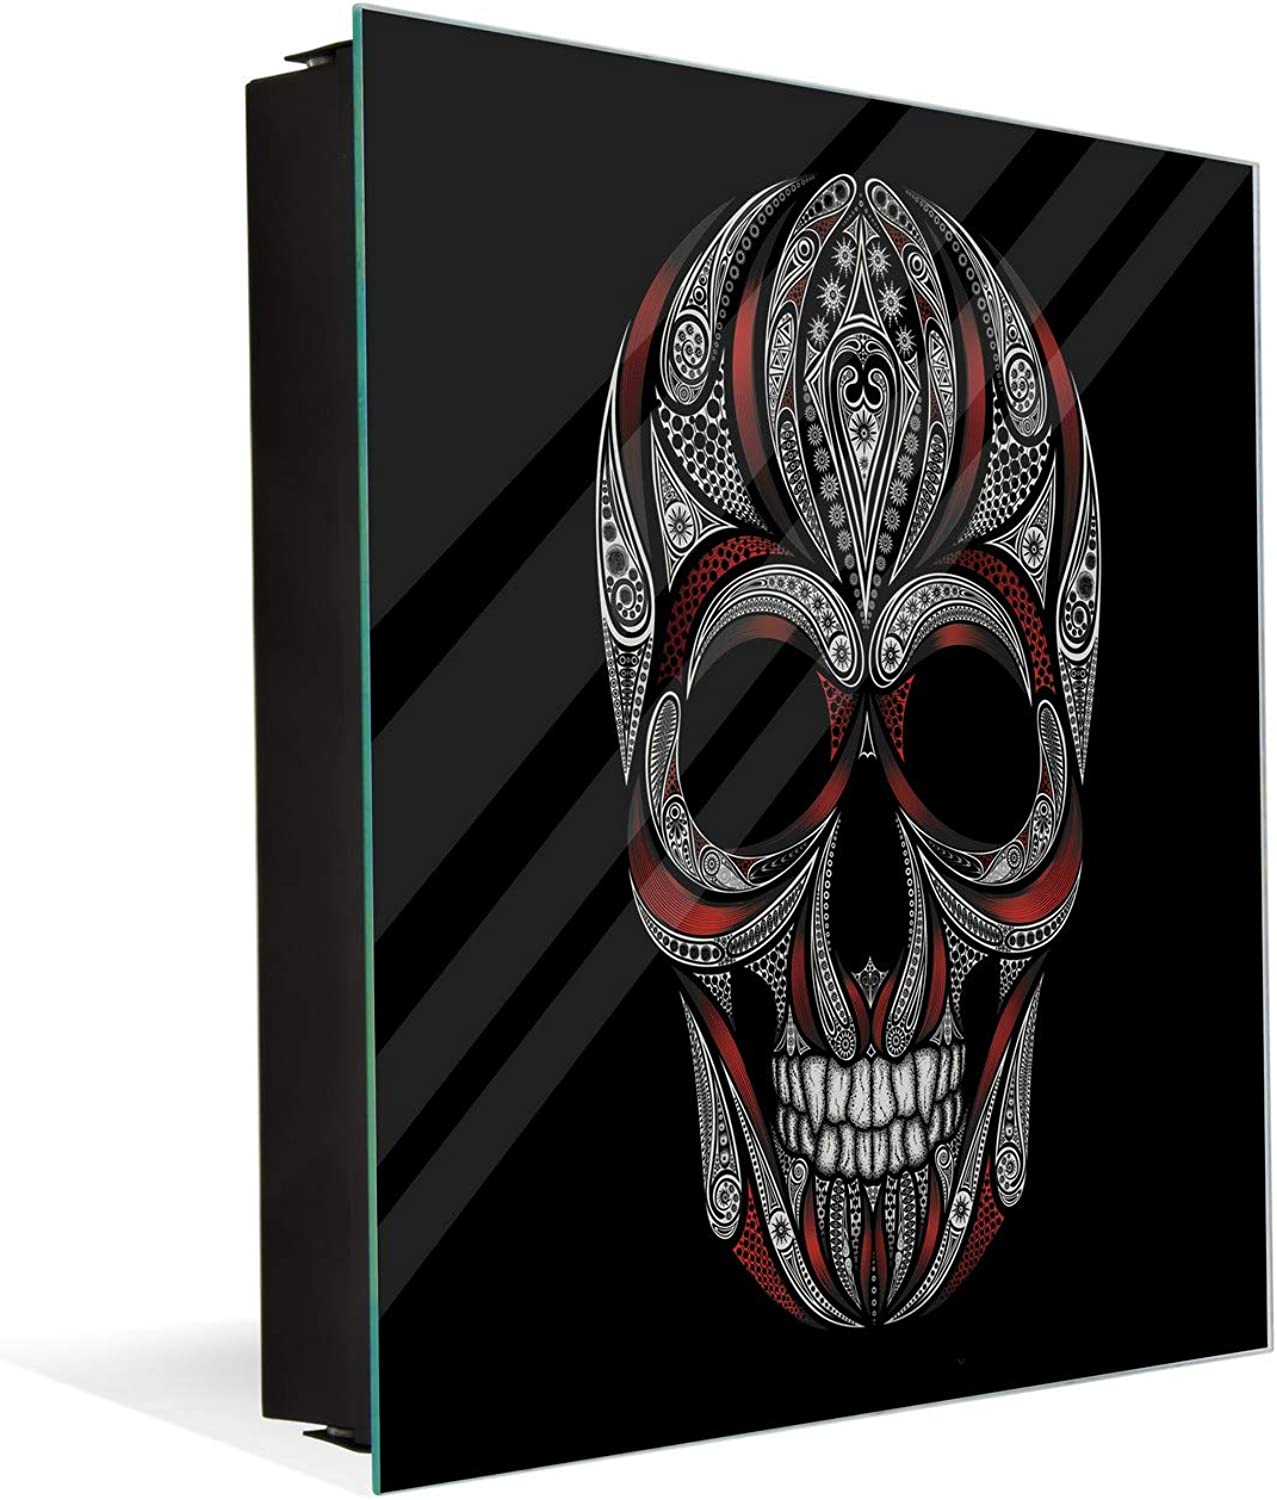 Wall Mount Key Box Together with Decorative Dry Erase Board K12 Skull and Bloody Strips